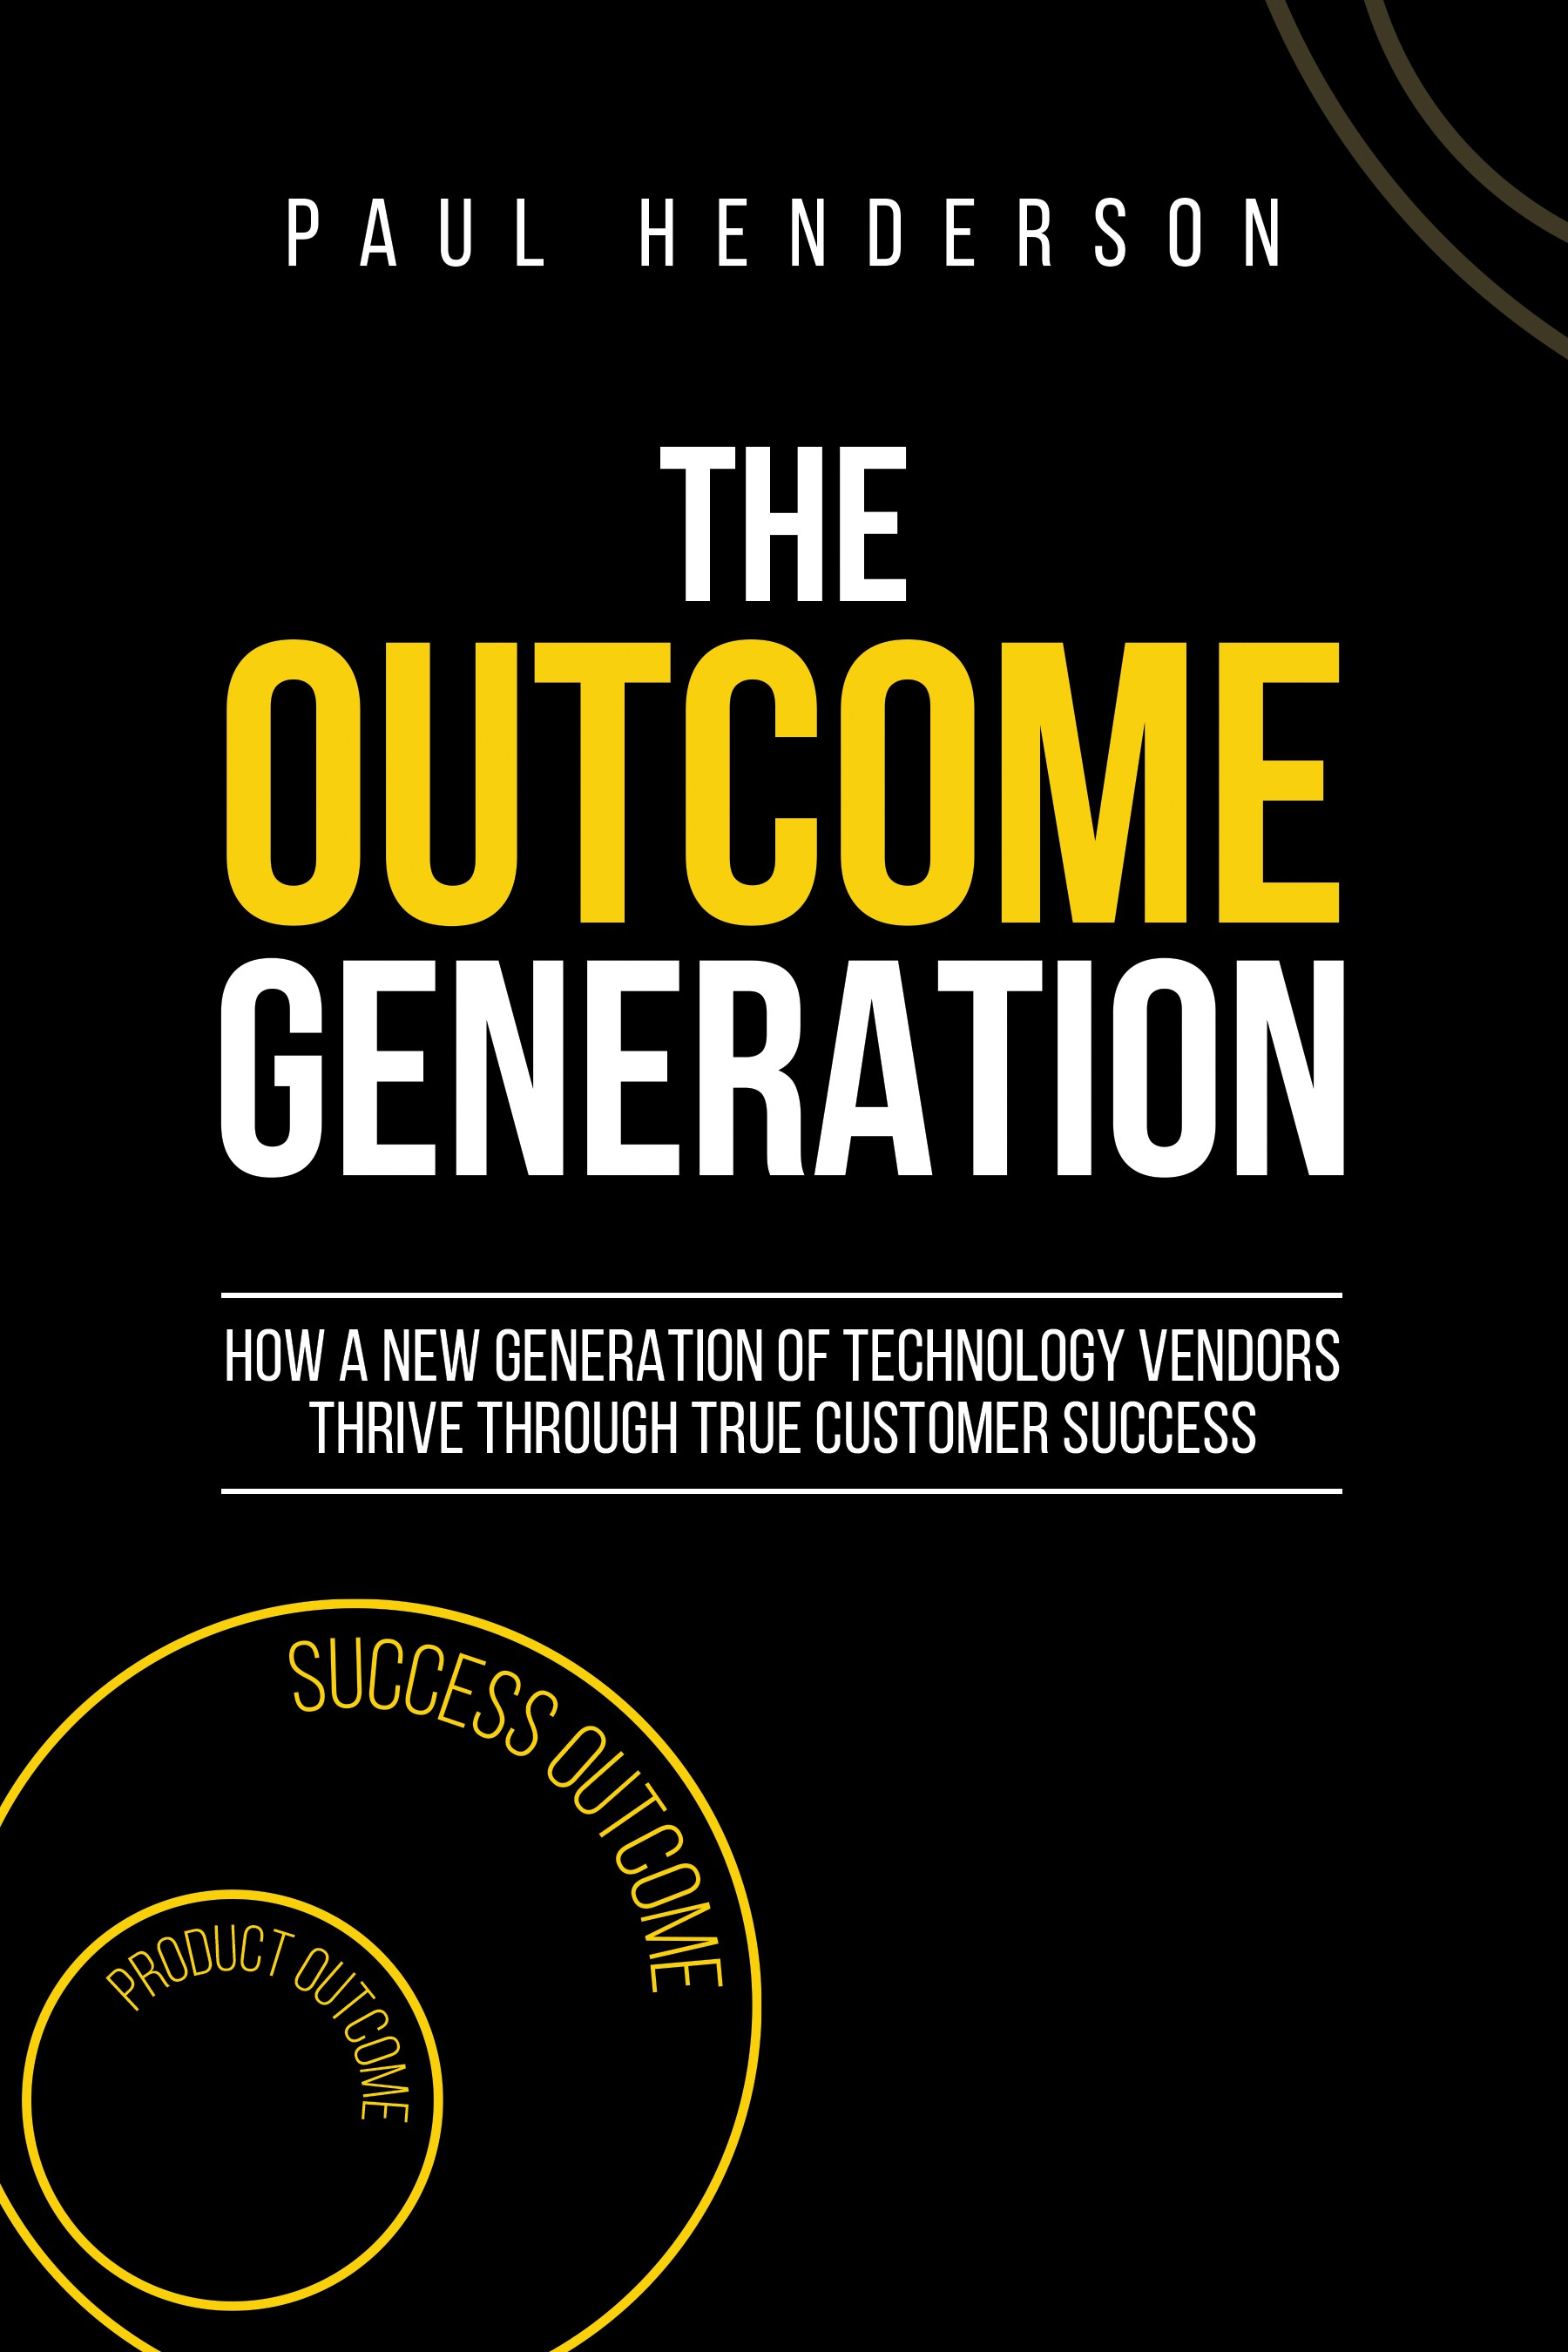 Book for technology vendors needs an eye-catching cover